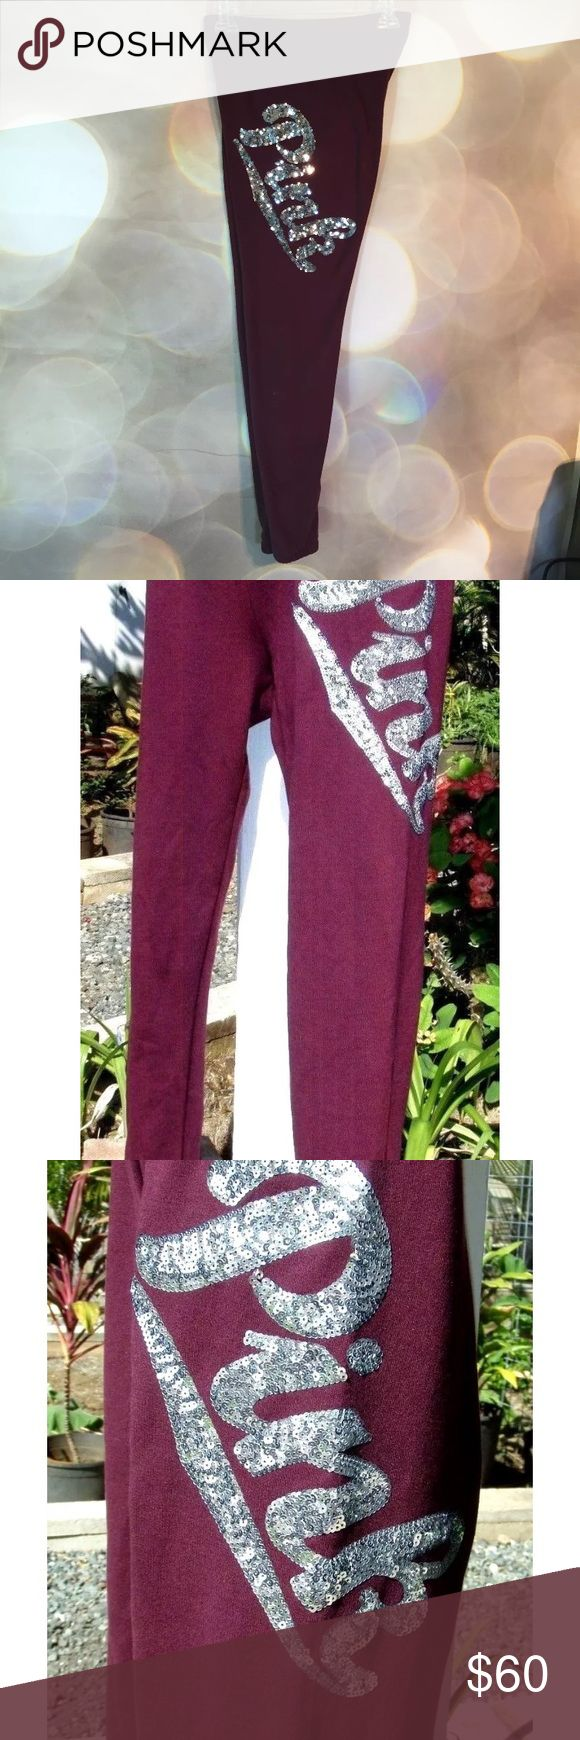 Maroon burgundy bling silver bling skinny pants Maroon or burgundy in color, not sure what the difference is... but these are part of a special edition line & have silver sequins on the hip. They're full length. Has elastic waist band & elastic at the ankles but is a baggier fit at the ankles, they don't hug you skin tight. I love these! But I need to sell them or buy the matching hoodie 4reasonable whichever comes first. So I'm looking to sell or buy! Thank you! **plz note photos are not my…